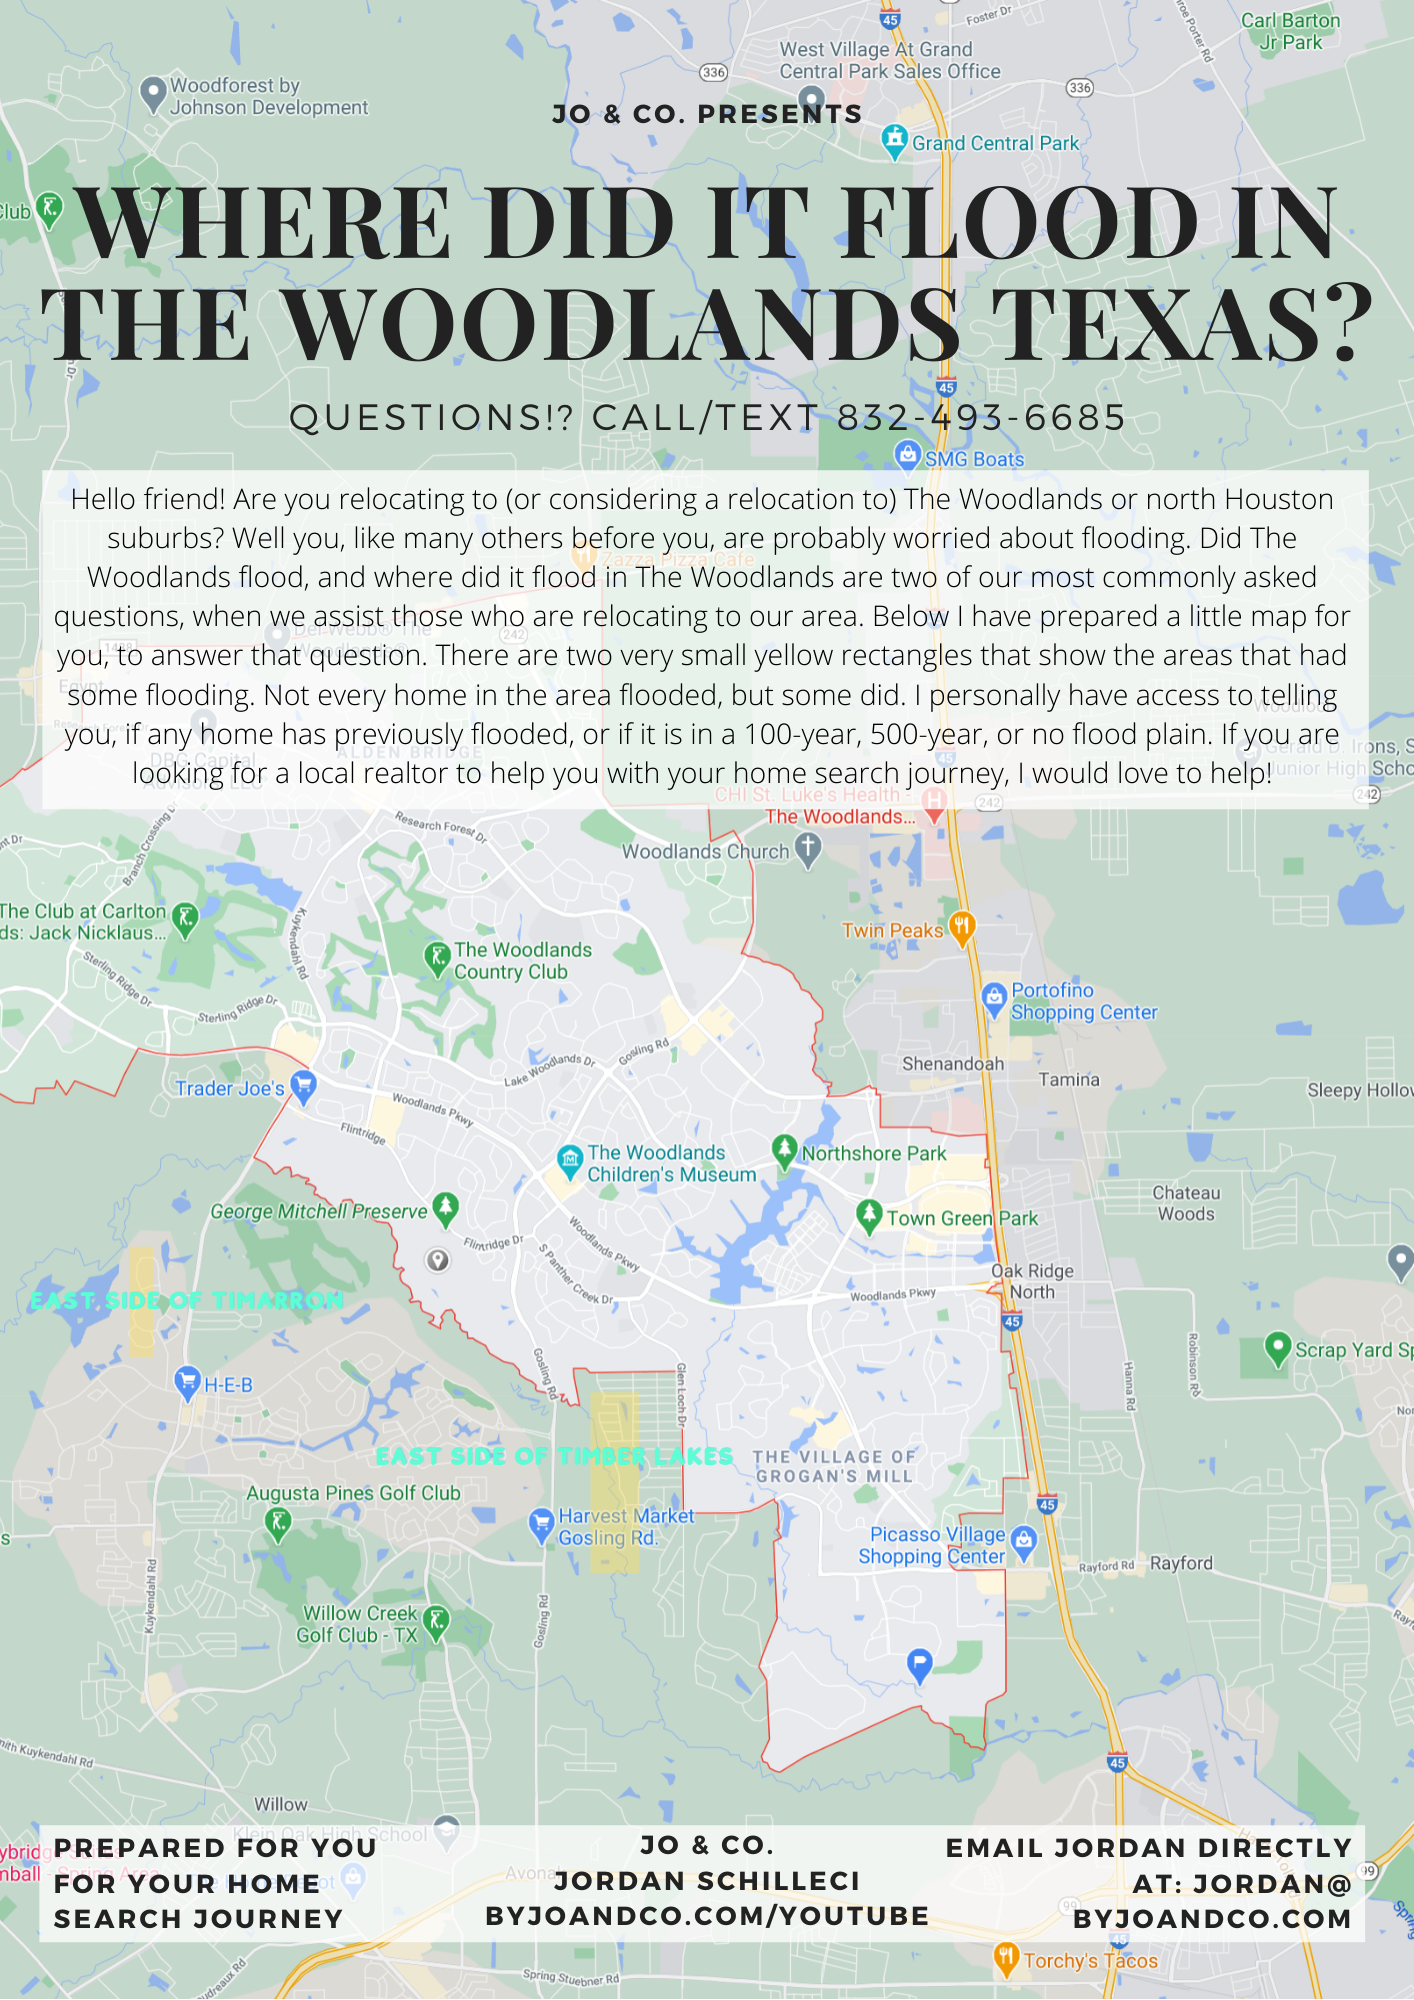 Where did it flood in The Woodlands?